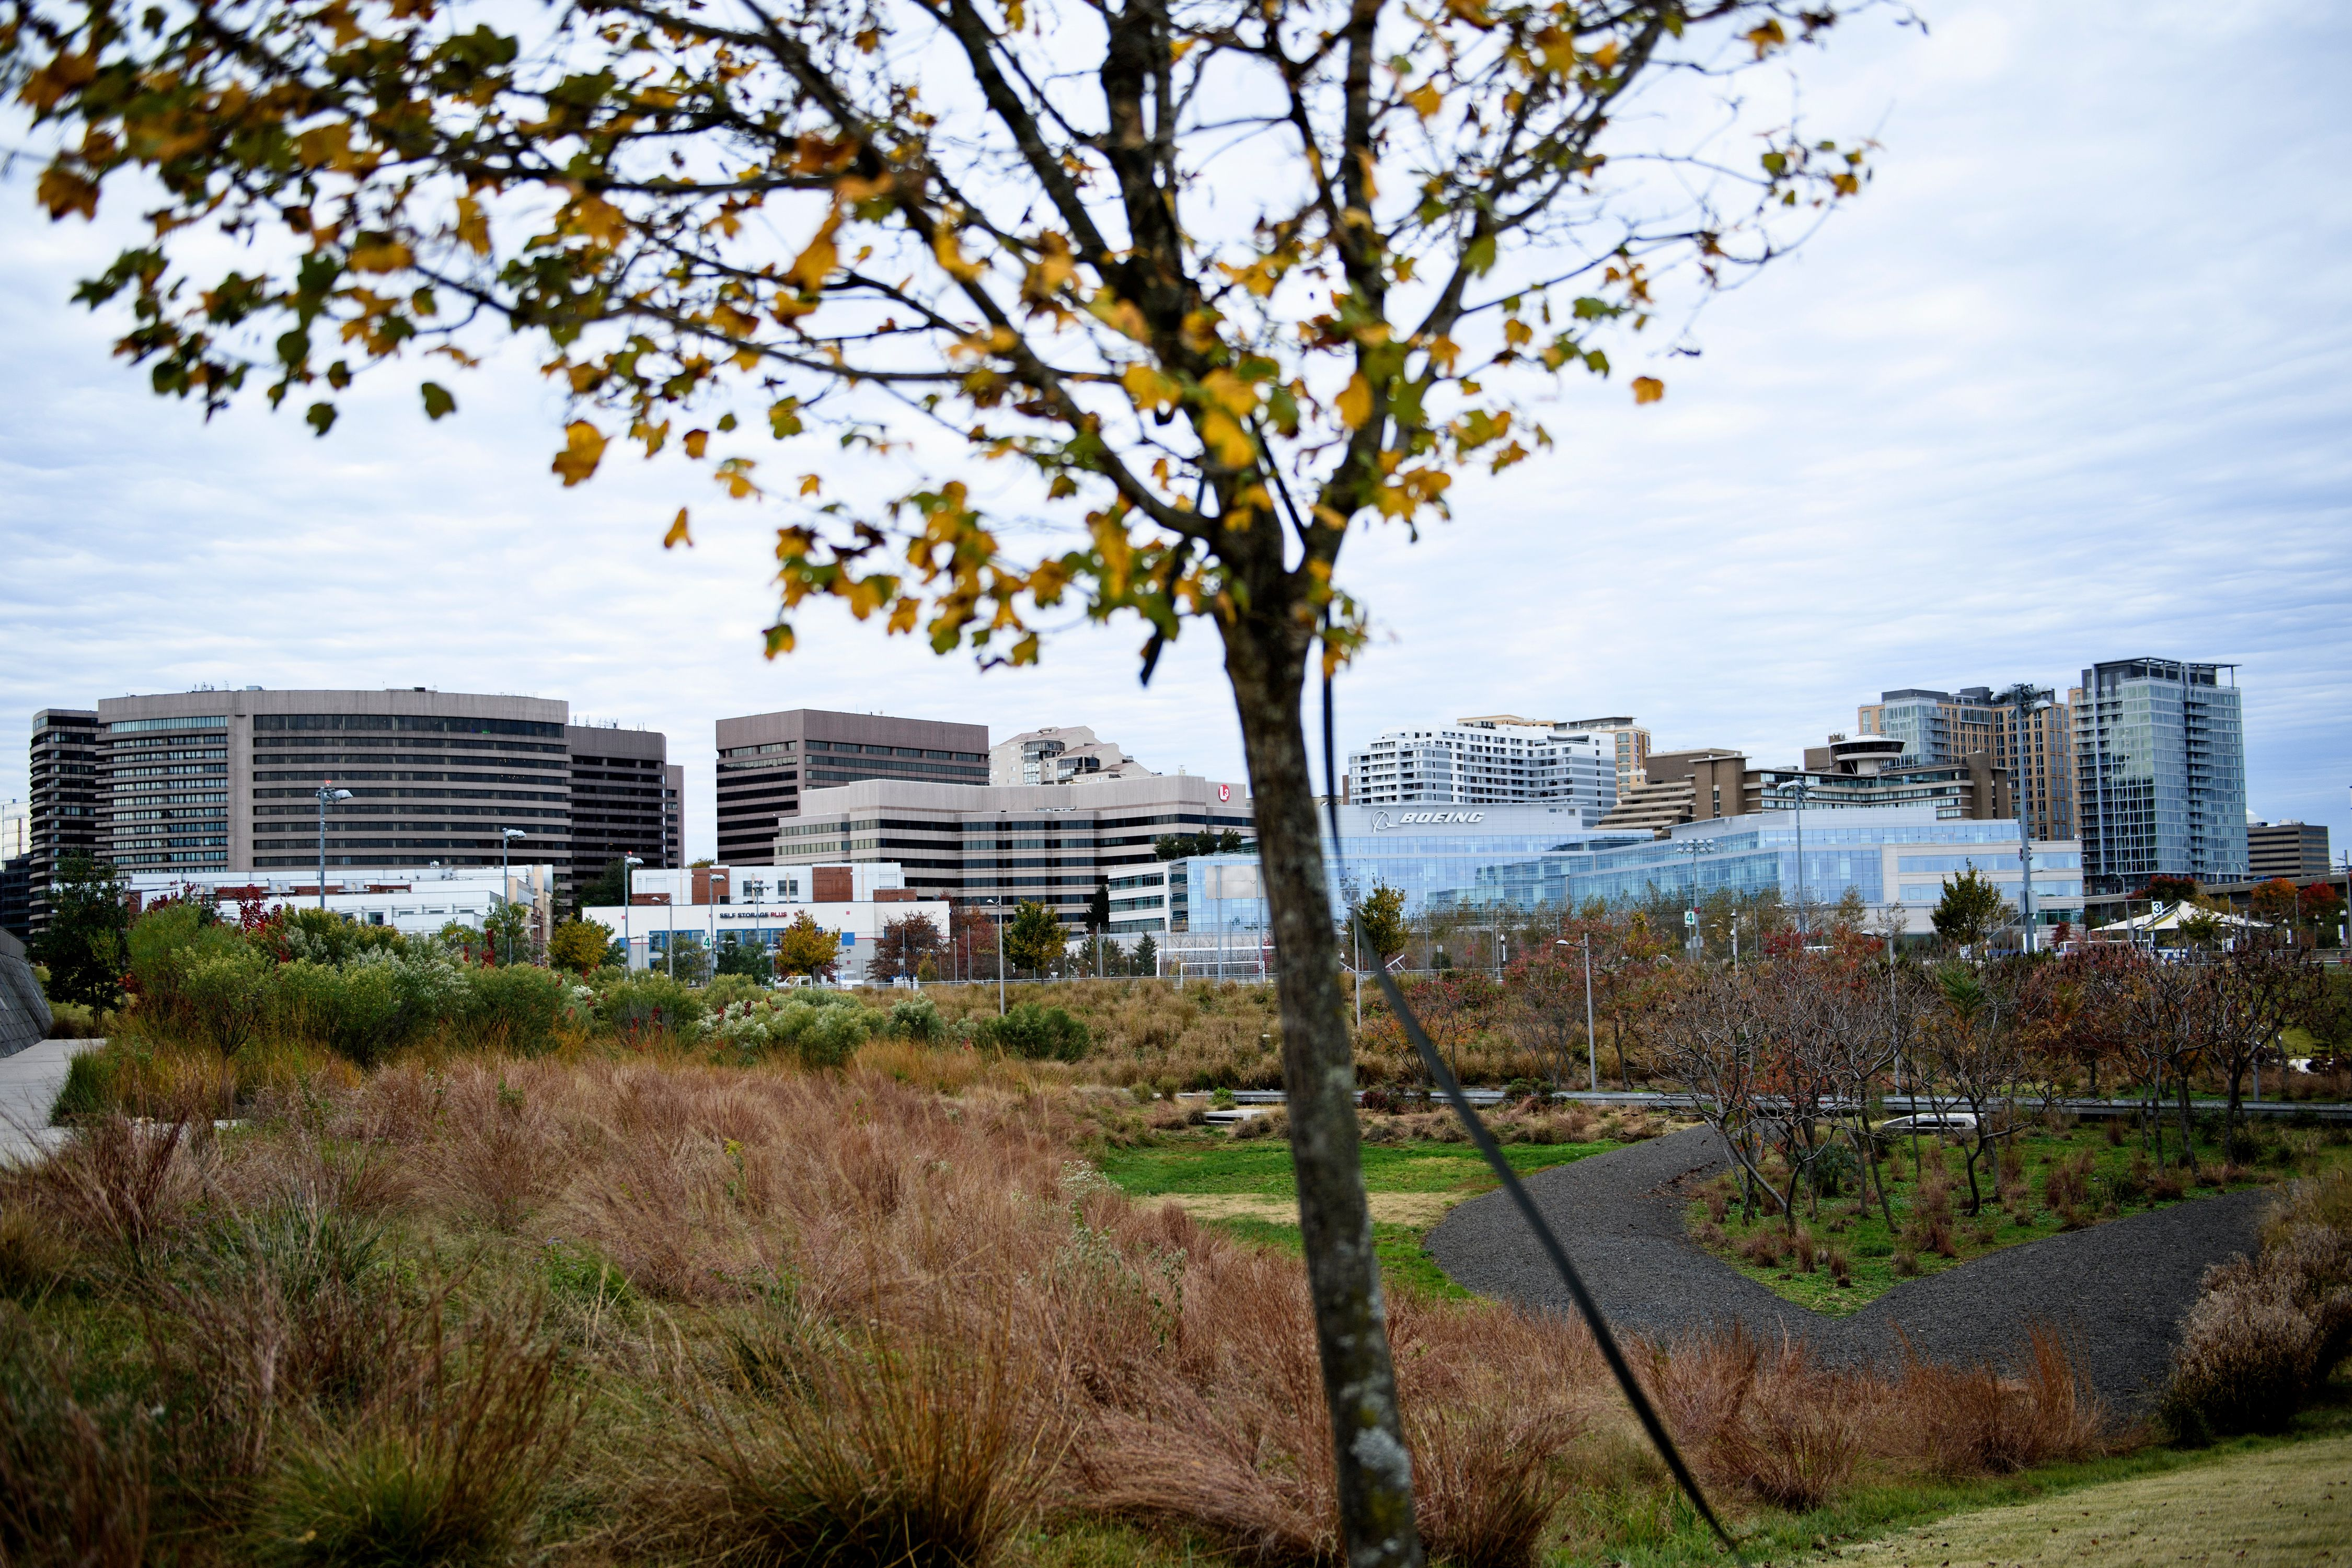 A view of the Crystal City section, one of the possible locations for Amazon's second headquarters is seen on November 7, 2018 in Arlington, Virginia. BRENDAN SMIALOWSKI/AFP/Getty Images